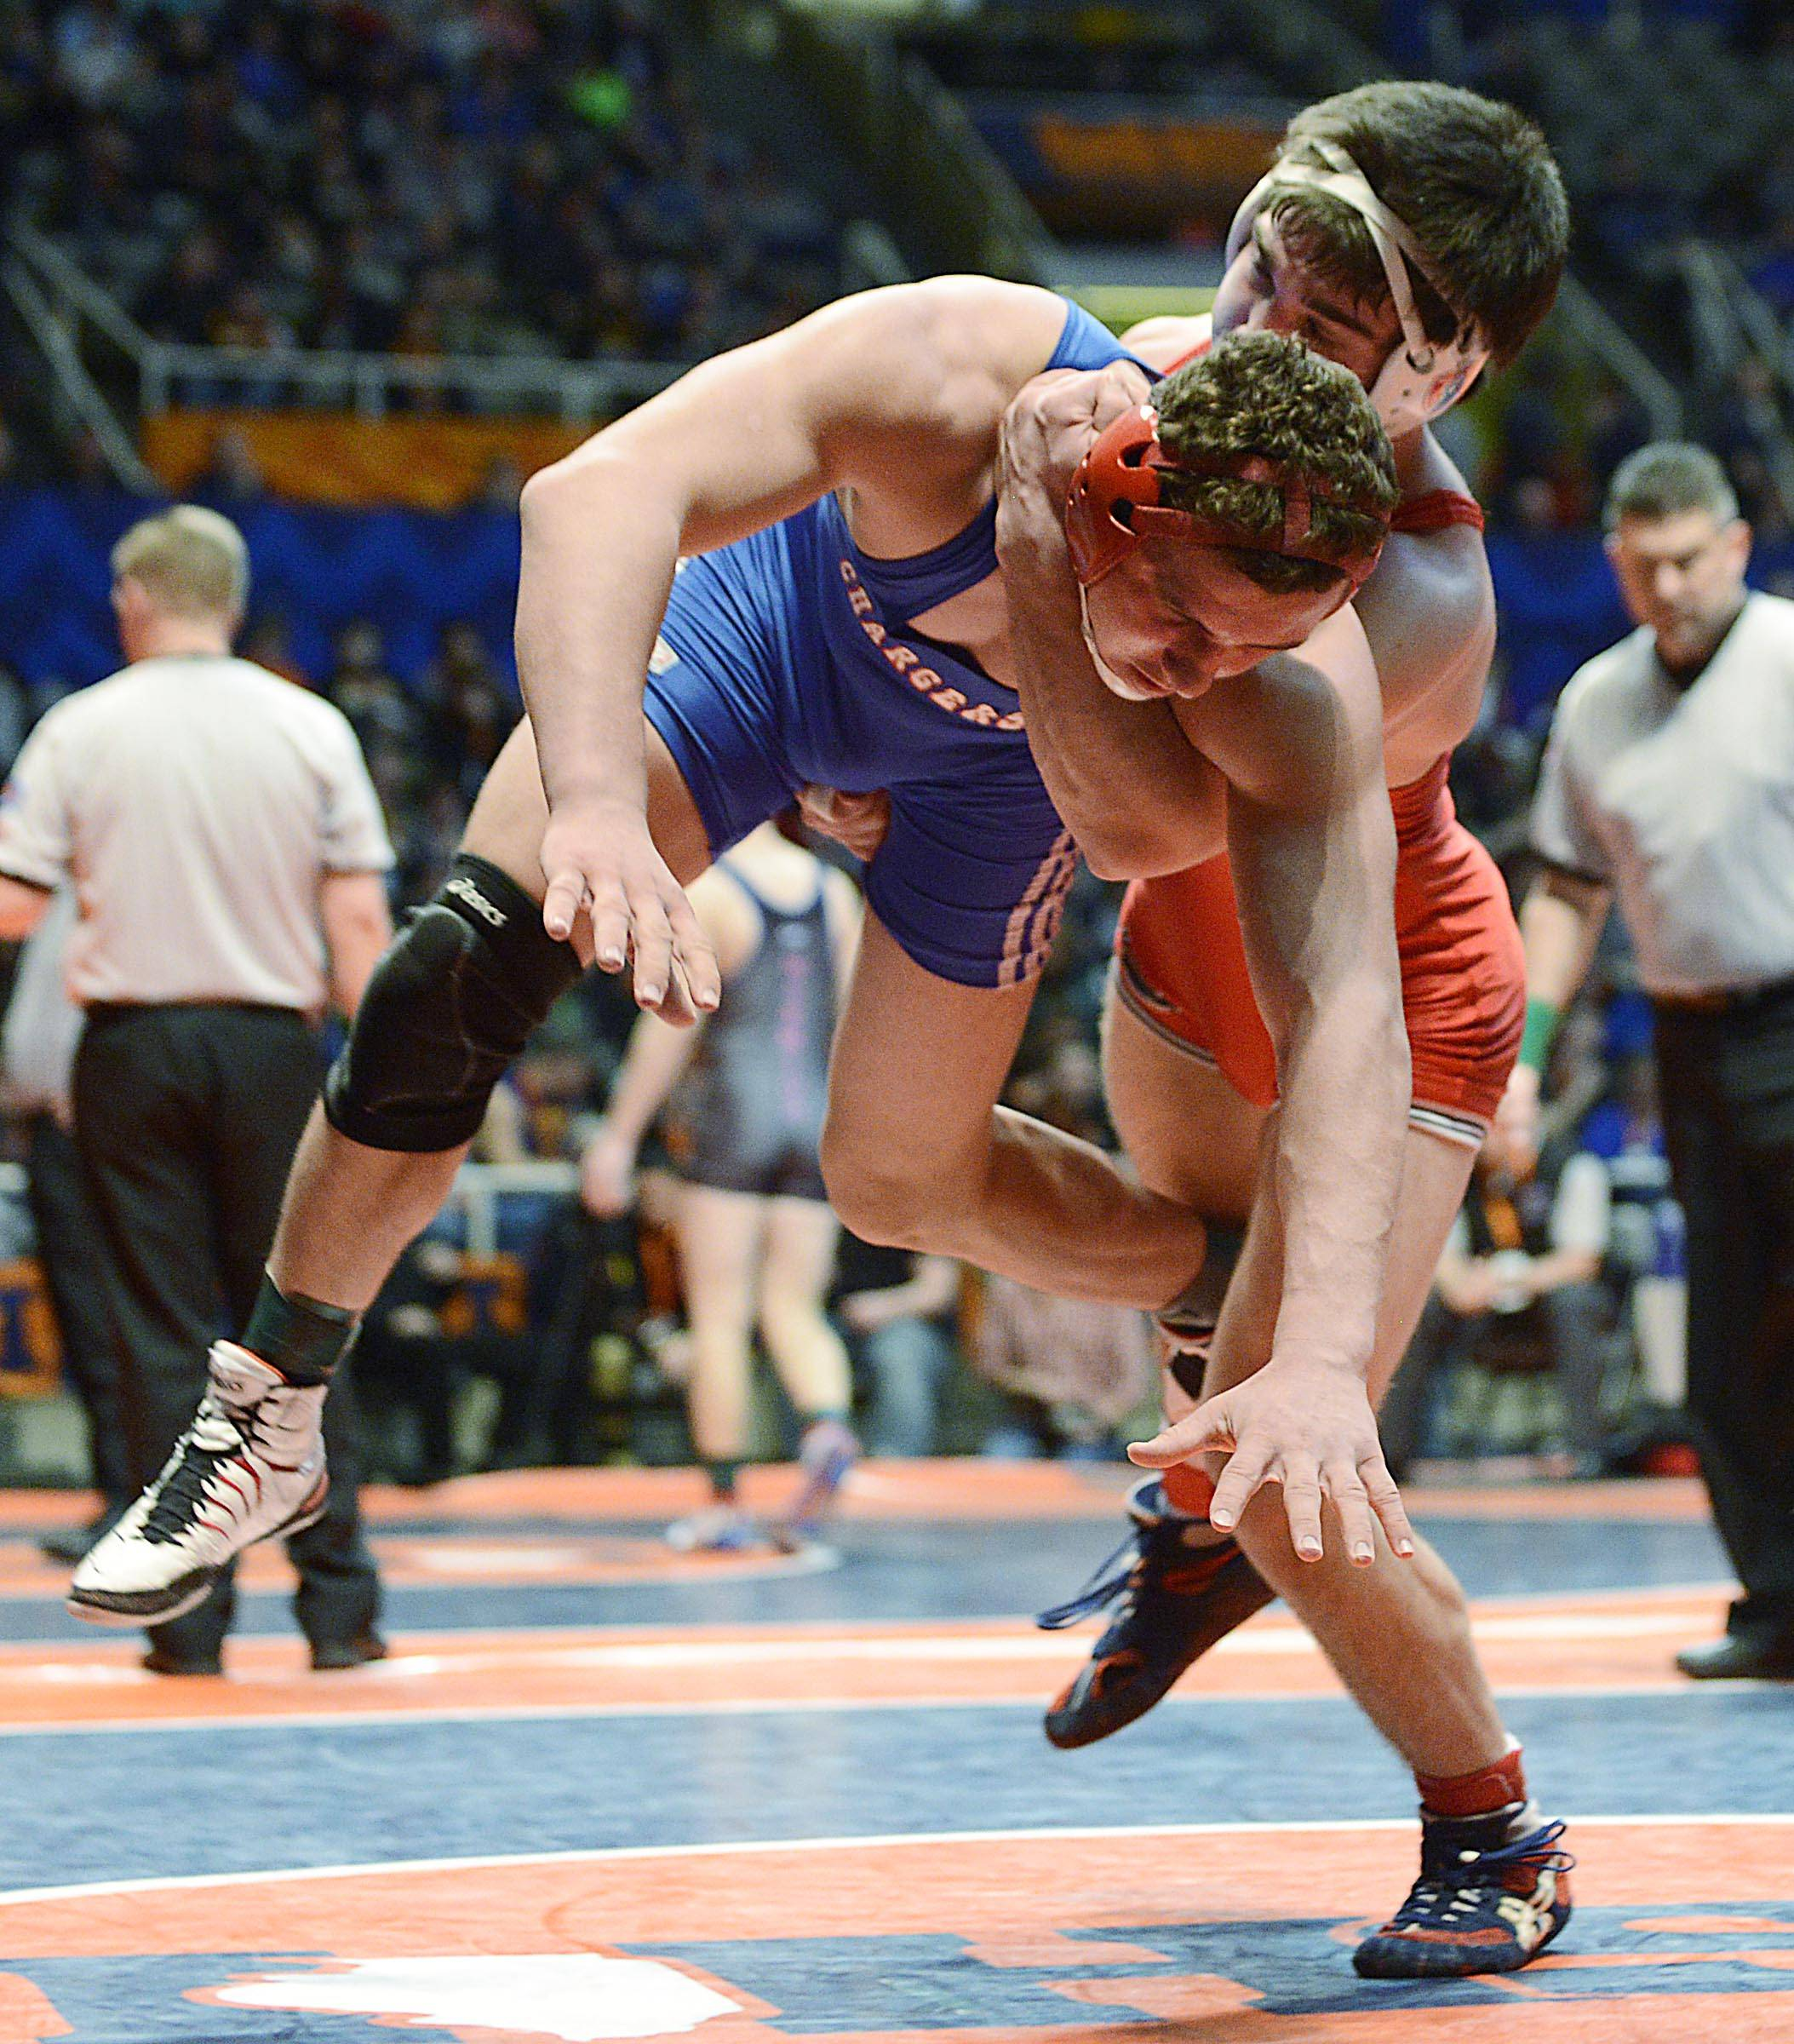 Christian Brunner of  Dundee-Crown High School is lifted and thrown by Alex Benoit of Marist High School Friday in the 182-pound weight class semifinals of the wrestling IHSA Class 3A state tournament at State Farm Center in Champaign.